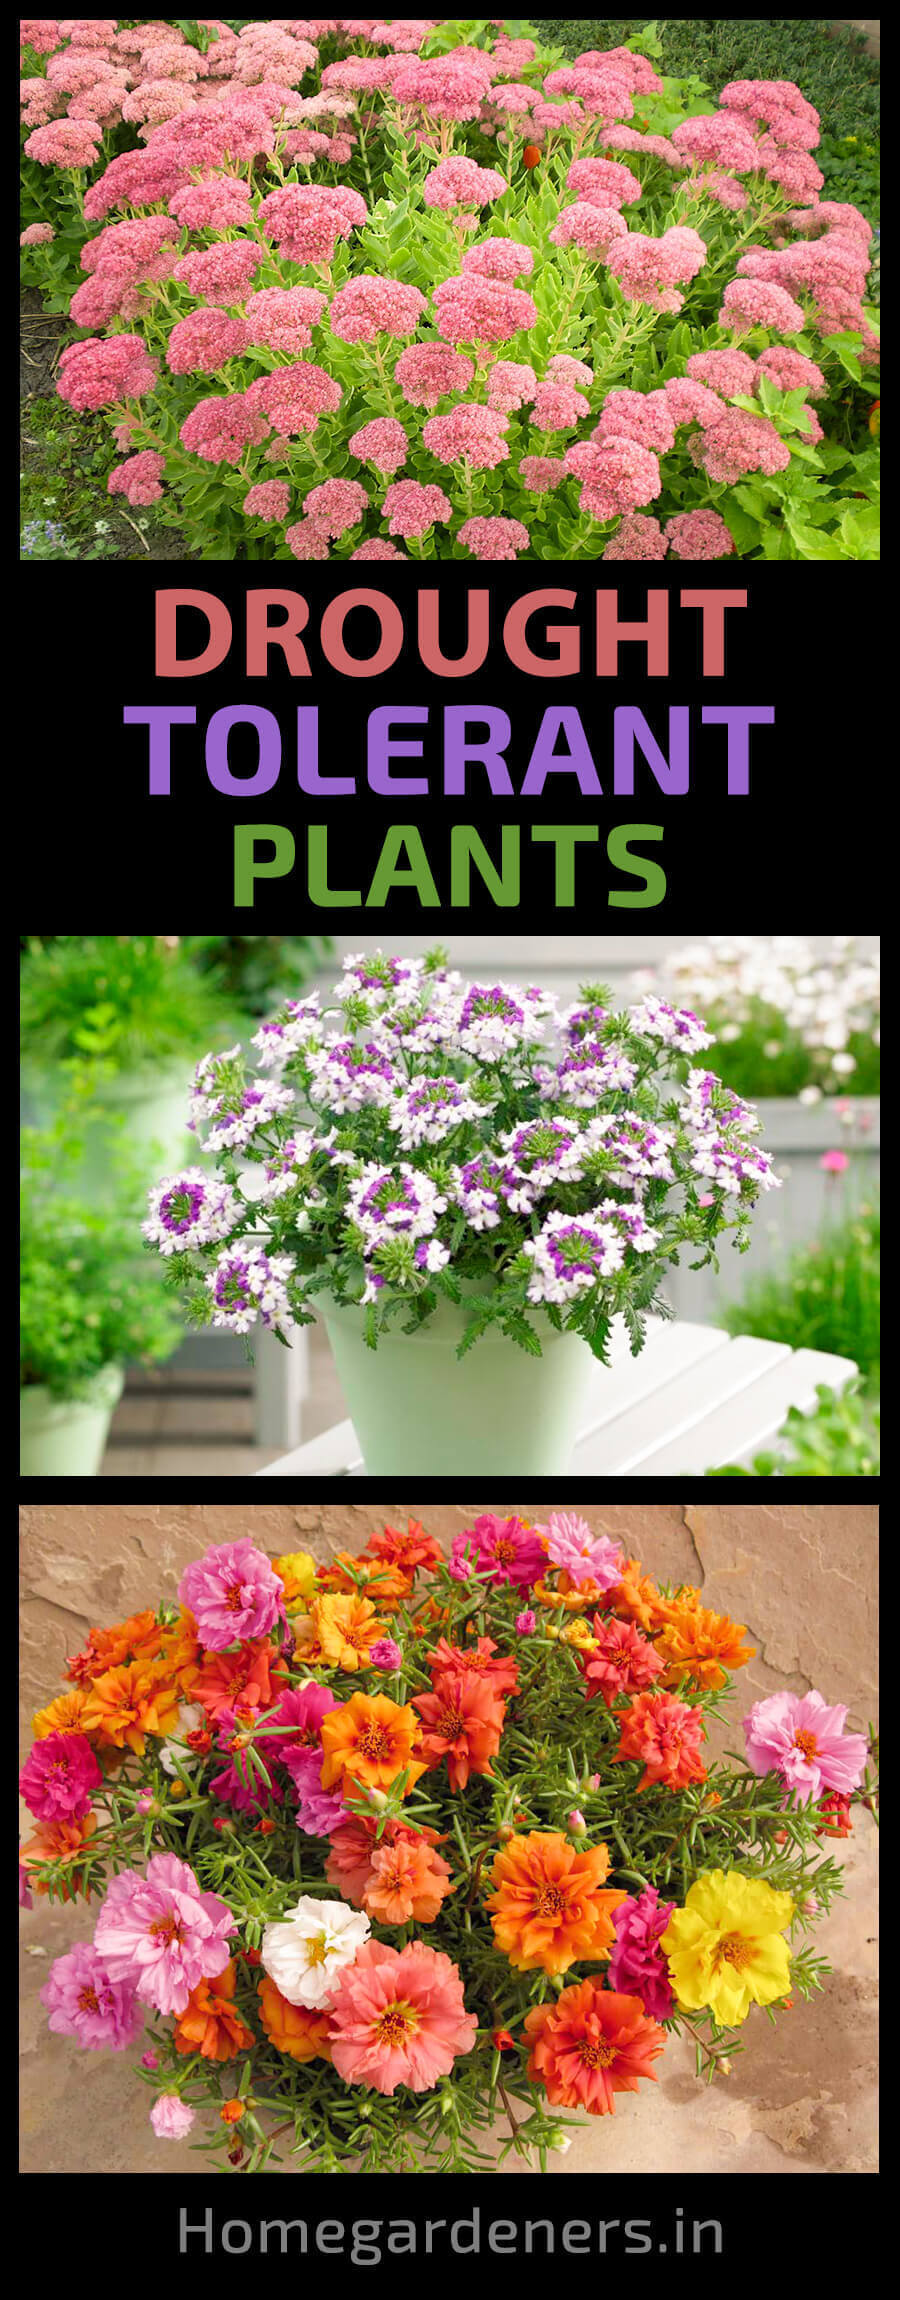 The 10 Best Drought Tolerant Plants that Grow in Lack of Water